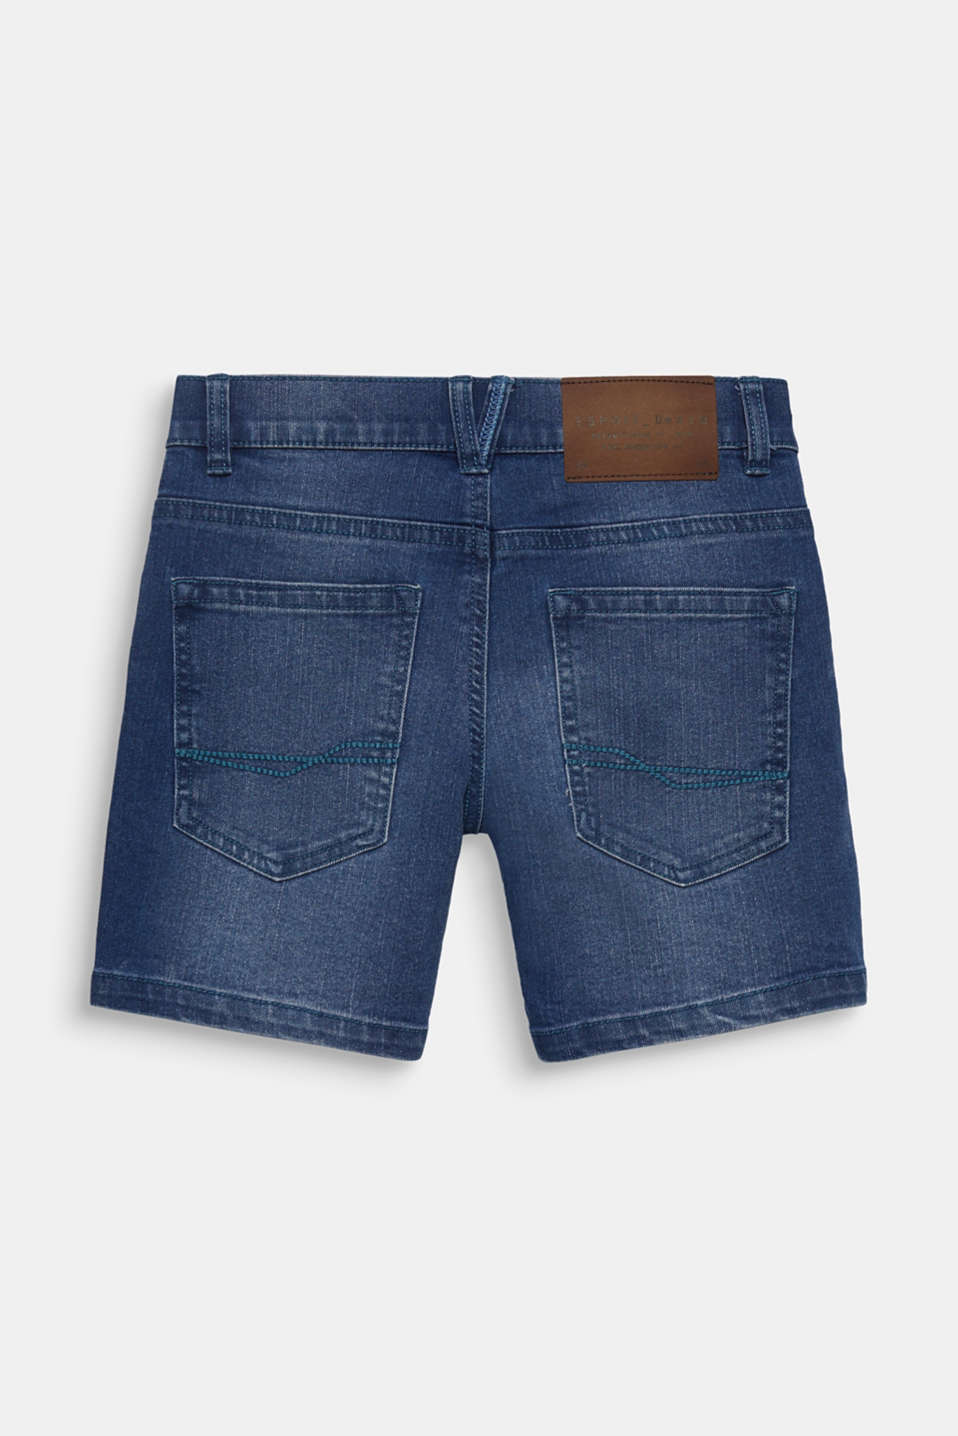 Comfy stretch denim shorts, adjustable waistband, LCLIGHT INDIGO D, detail image number 1